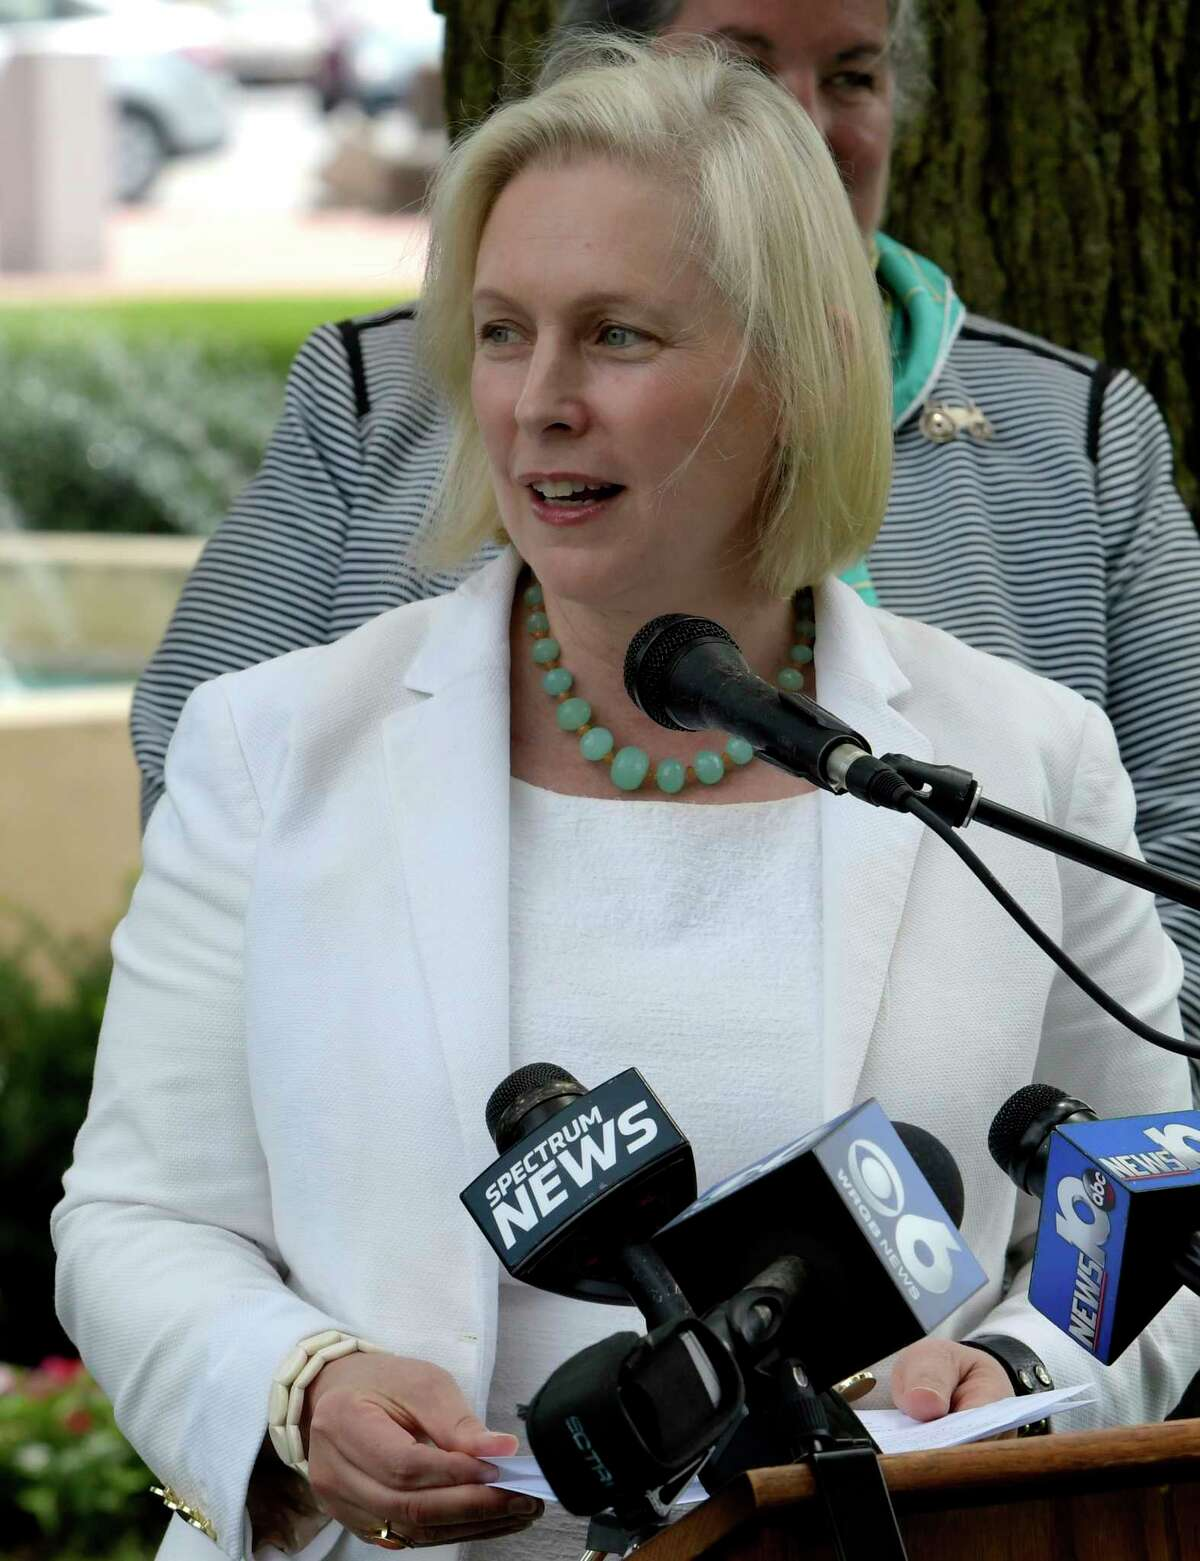 U.S. Senator Kirsten Gillibrand held a press conference in Juckett Park Monday July 17, 2017 in Hudson Falls, N.Y. to announce the Trump Administration has begun to establish the Tick-Borne Disease Working Group, a key provision in her Lyme and Tick-Borne Disease Prevention, Education, and Research Act, which became law as a part of the 21st Century Cures Act in December 2016. The Tick-Borne Disease Working Group will review all federal activities related to tick-borne diseases, including Lyme disease, and will function as a Federal Advisory Committee to the Department of Health and Human Services. (Skip Dickstein/Times Union)